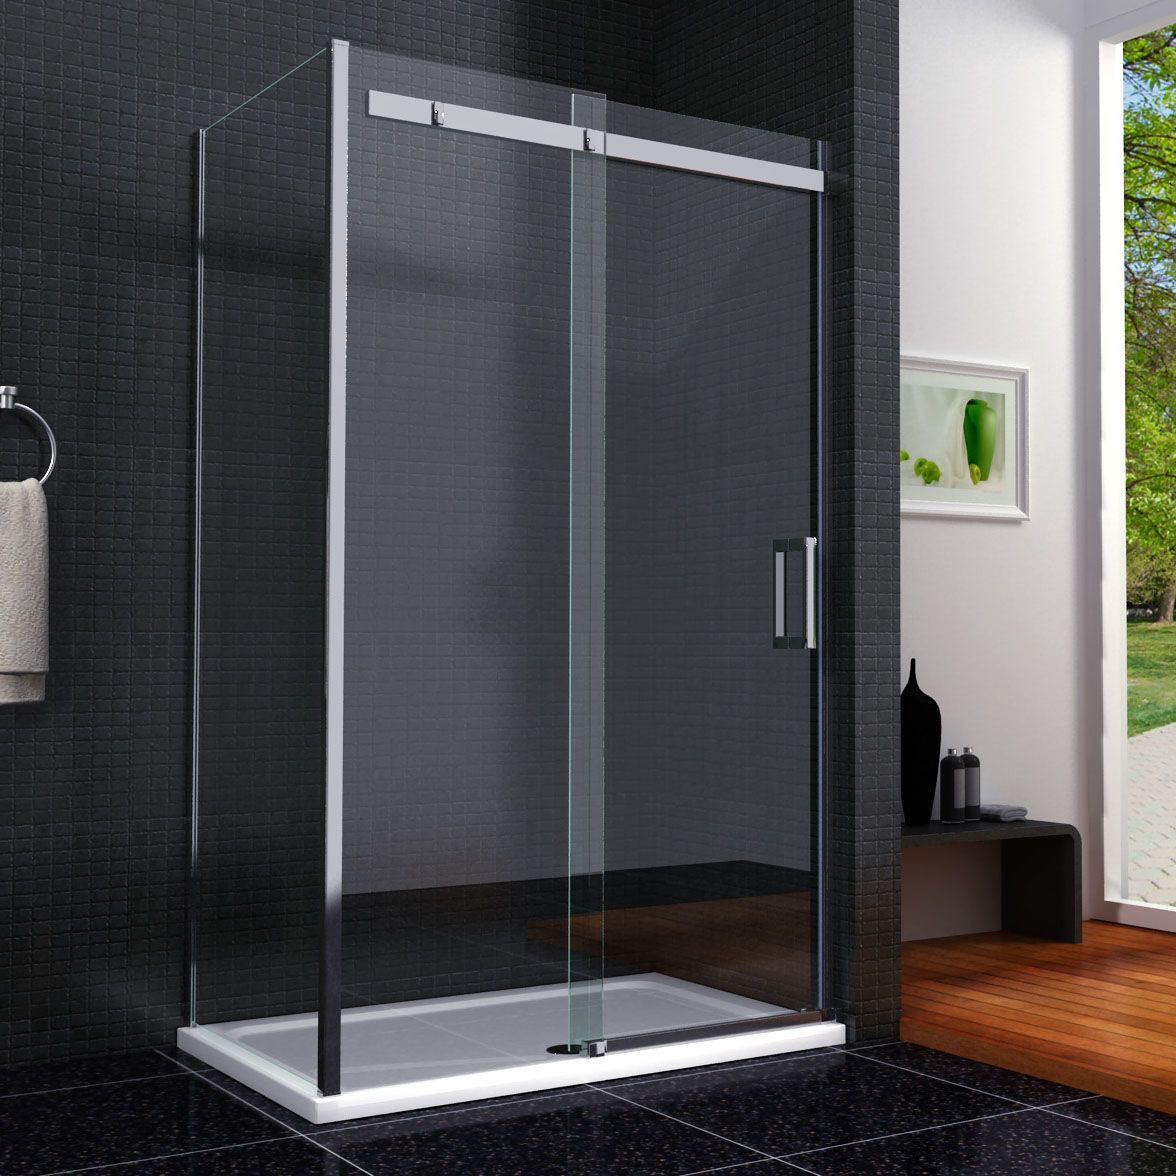 Shower bath screen | Bathroom | Pinterest | Shower enclosure ...